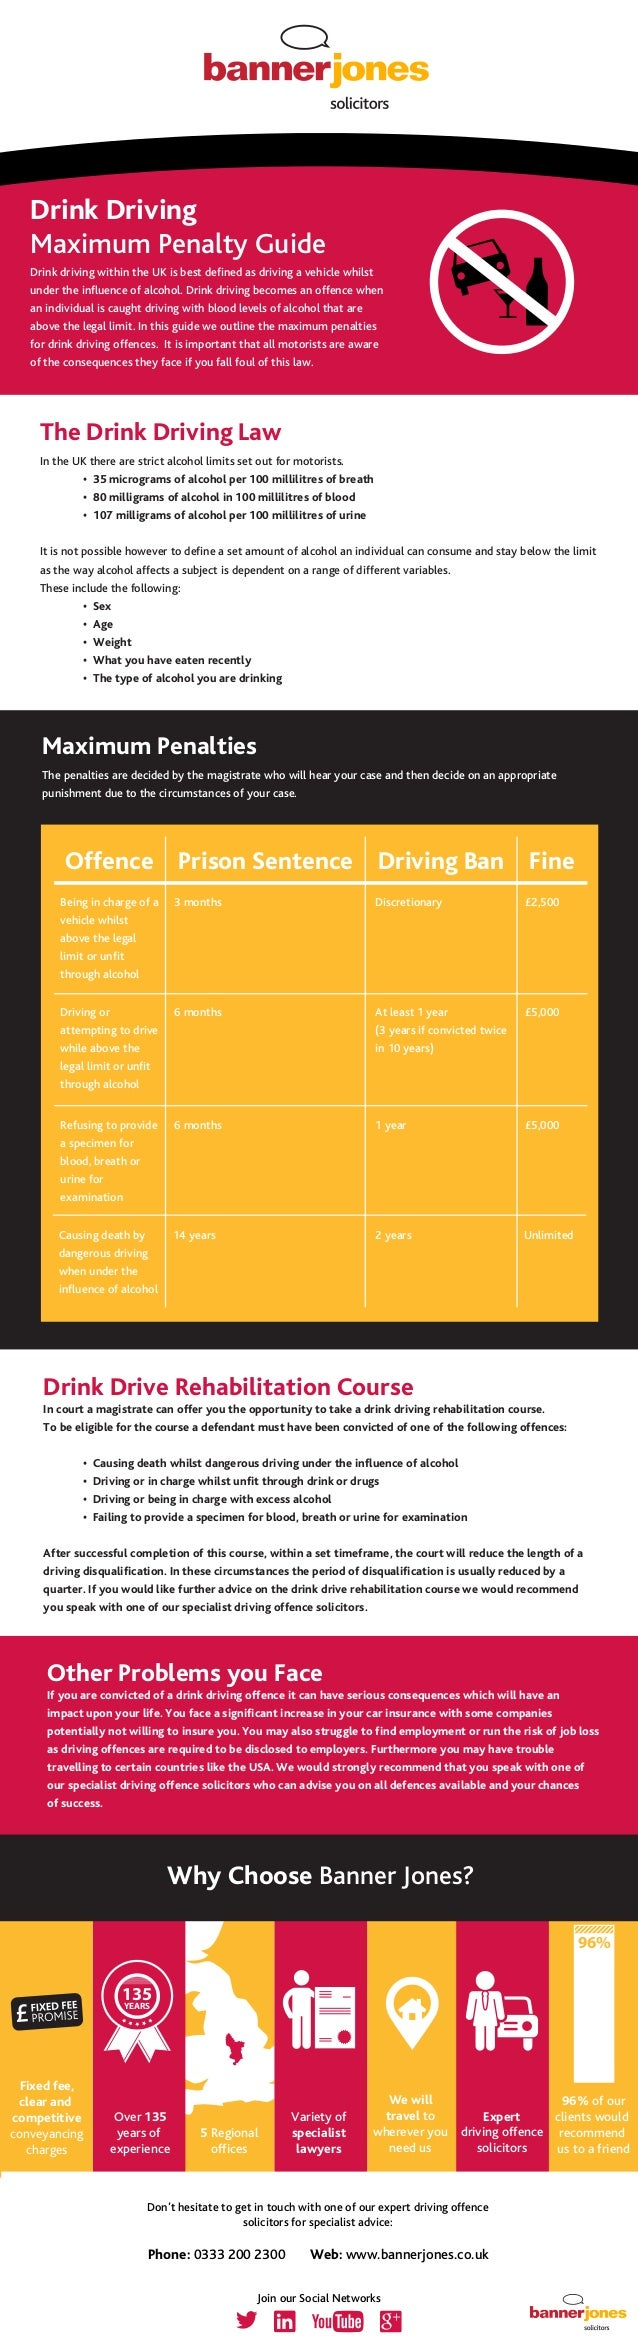 an analysis of penalties in drinking and driving offences A conviction for a drinking and driving related offence under the criminal code of canada results in a driver's licence suspension under the highway traffic act and a driving a prohibition under the criminal code prohibiting the operation of a motor vehicle.